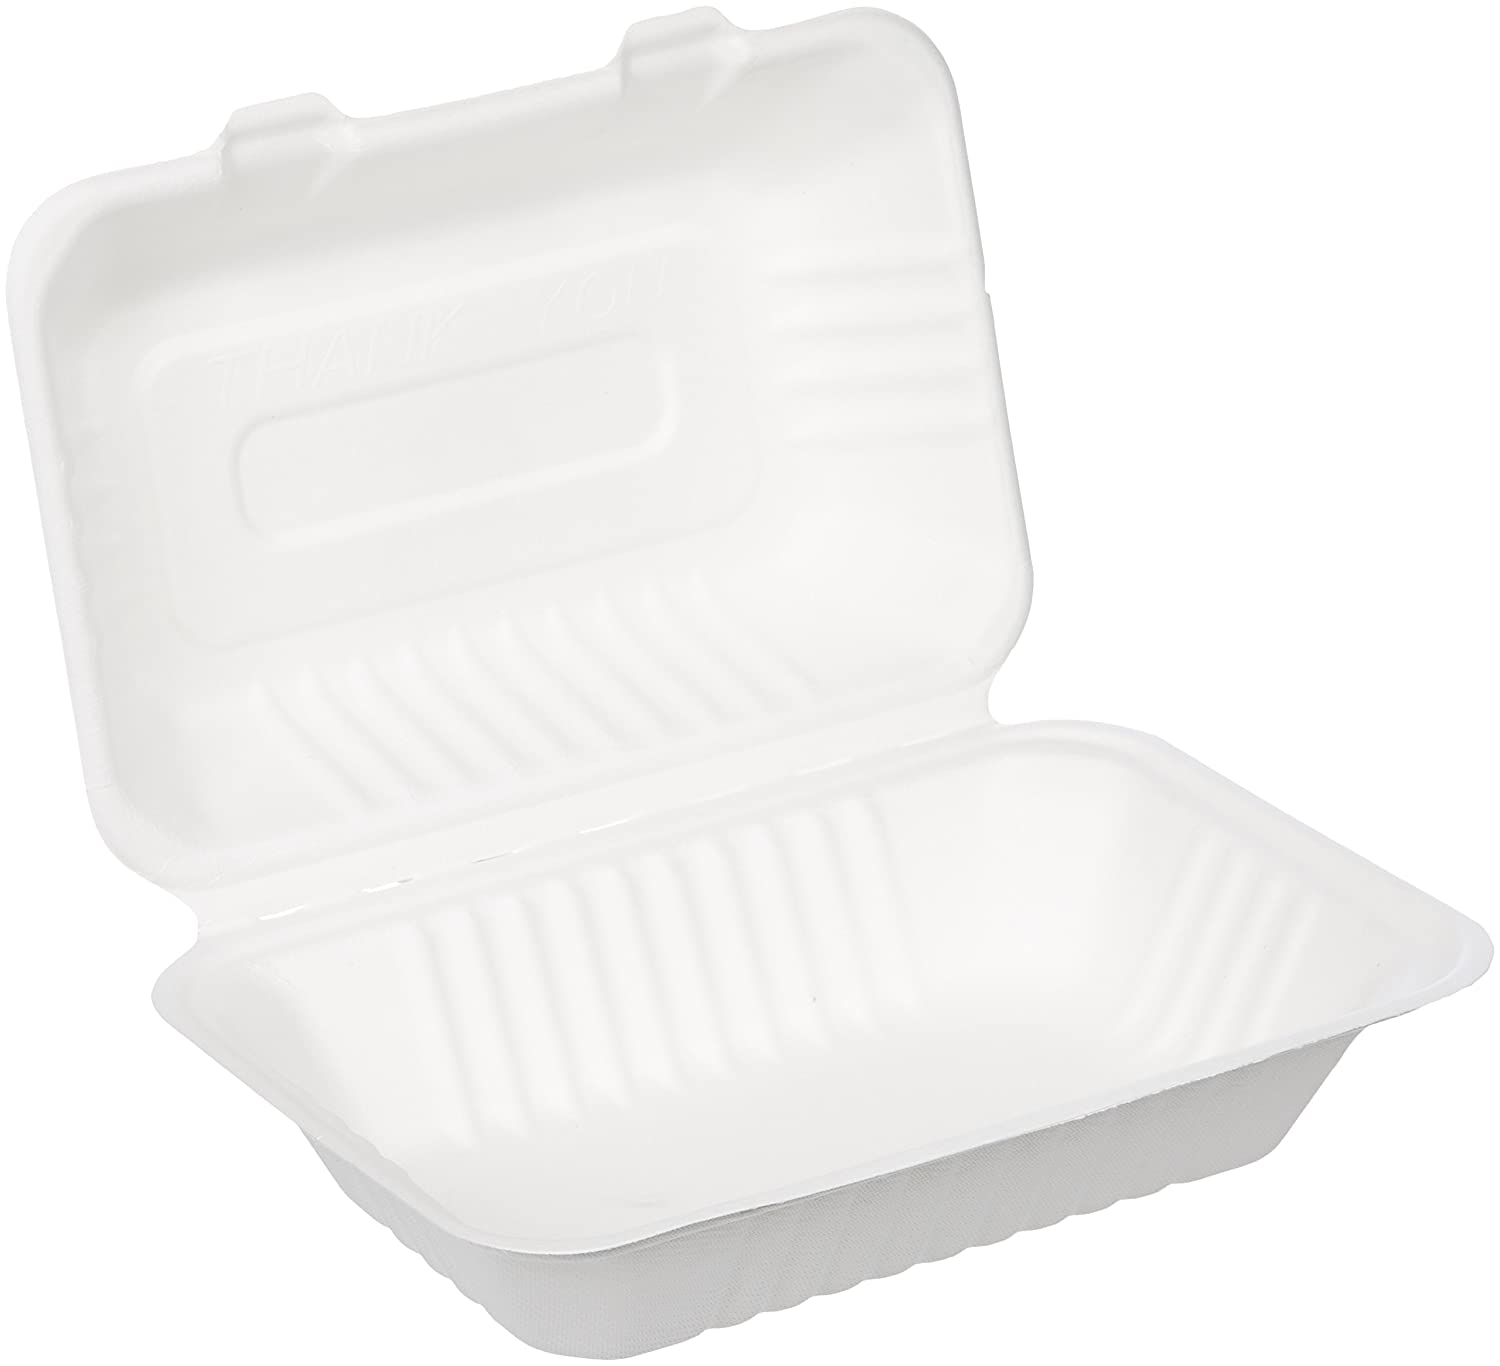 "AmazonBasics Compostable Clamshell Take-Out Food Container, 6"" x 9"" x 3"", Pack of 50"